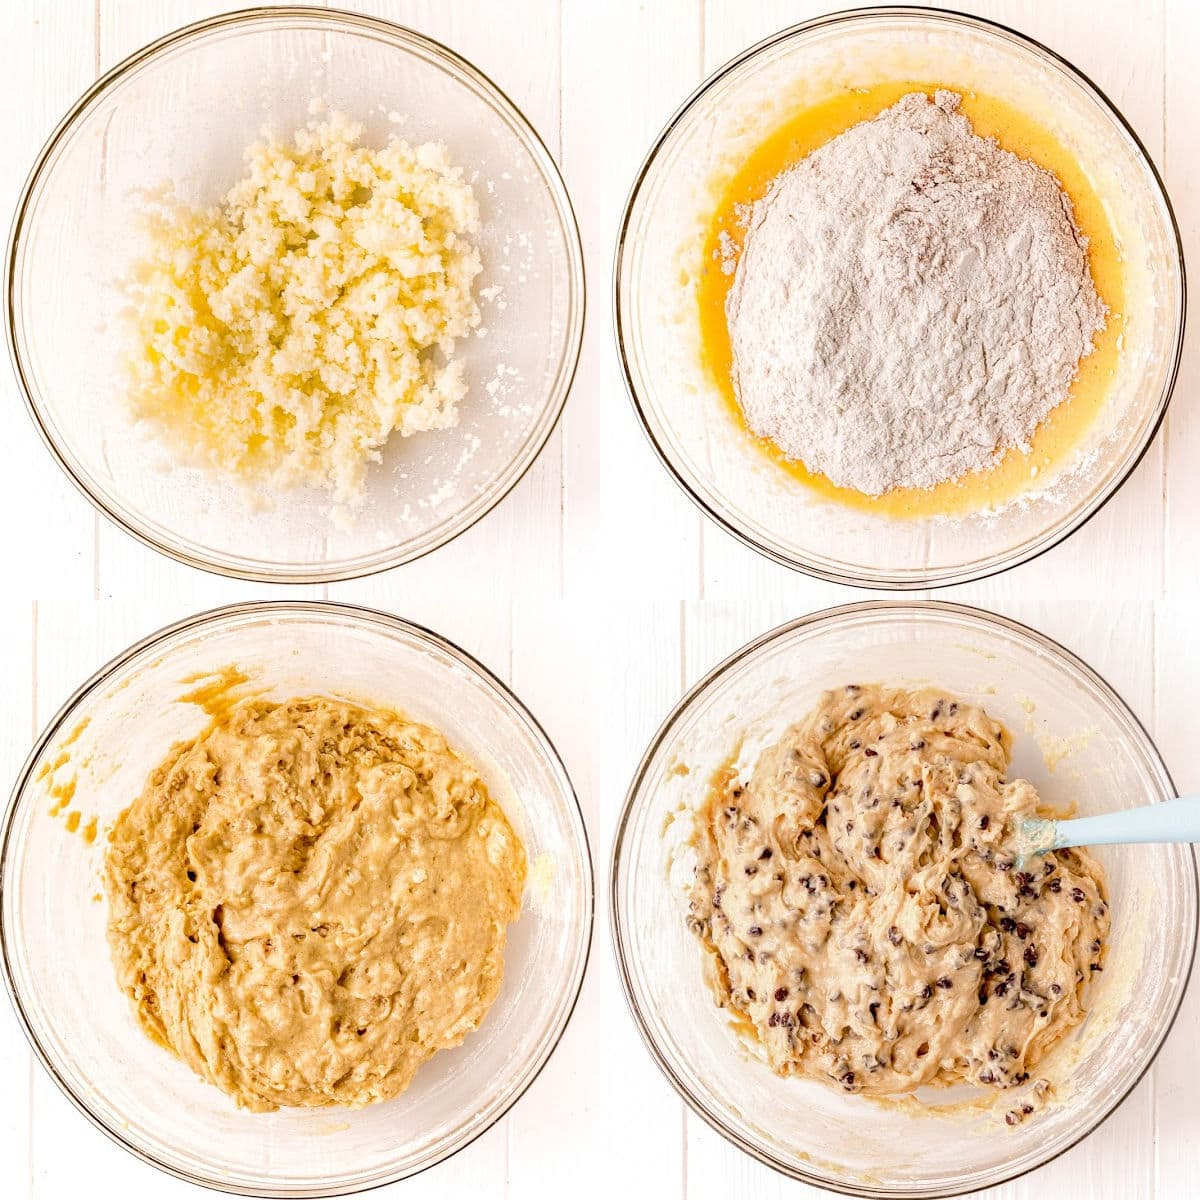 4 image collage showing muffin batter being mixed together